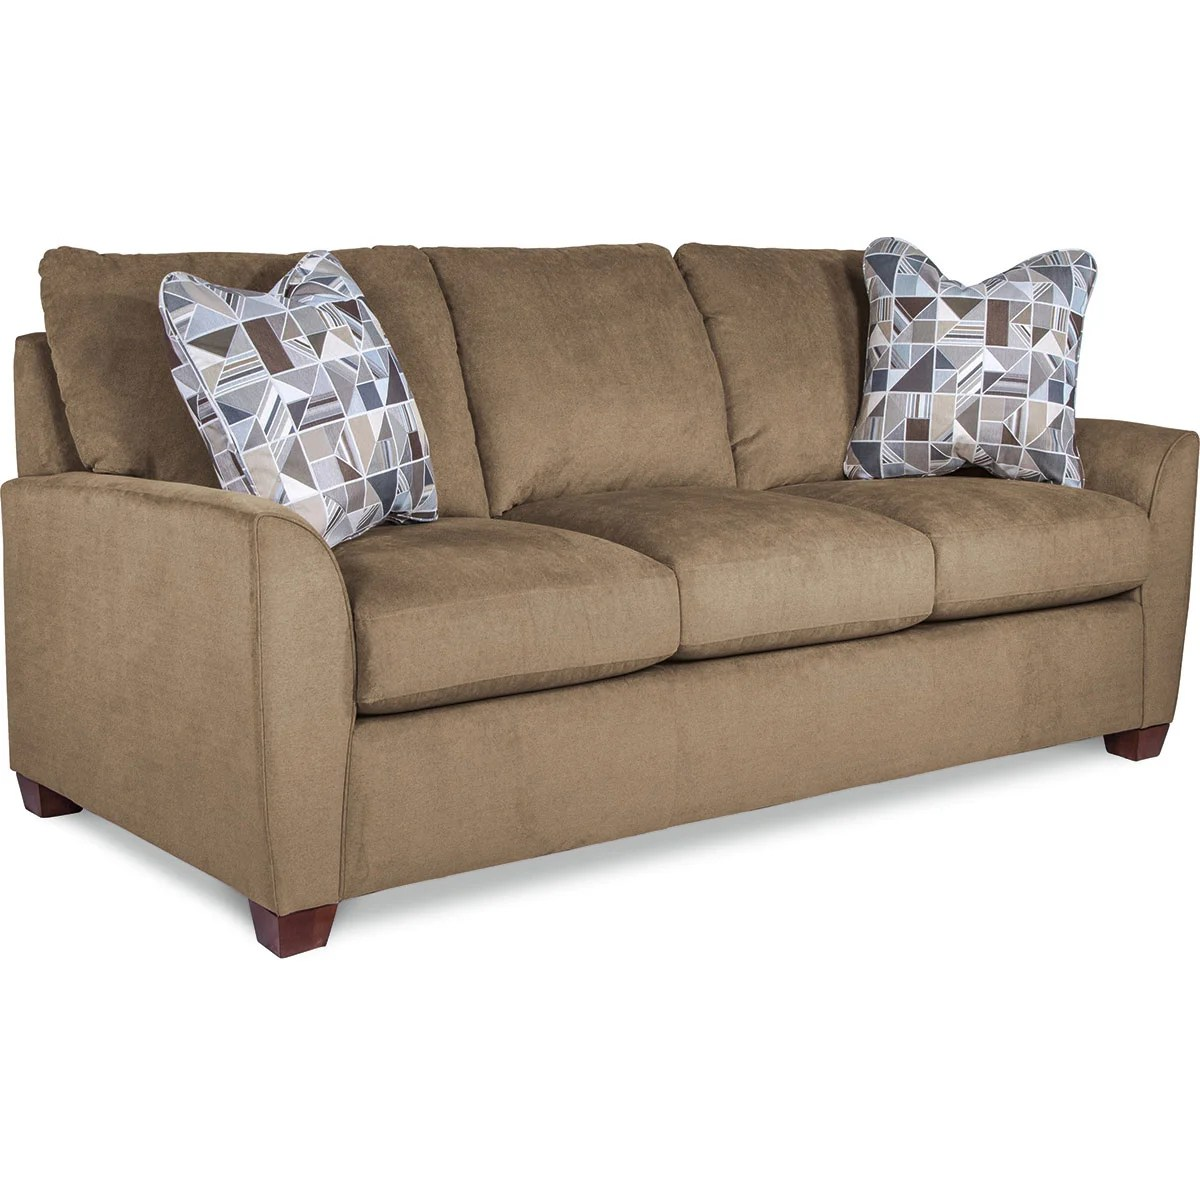 Sofas Couches Amy Premier Sofa